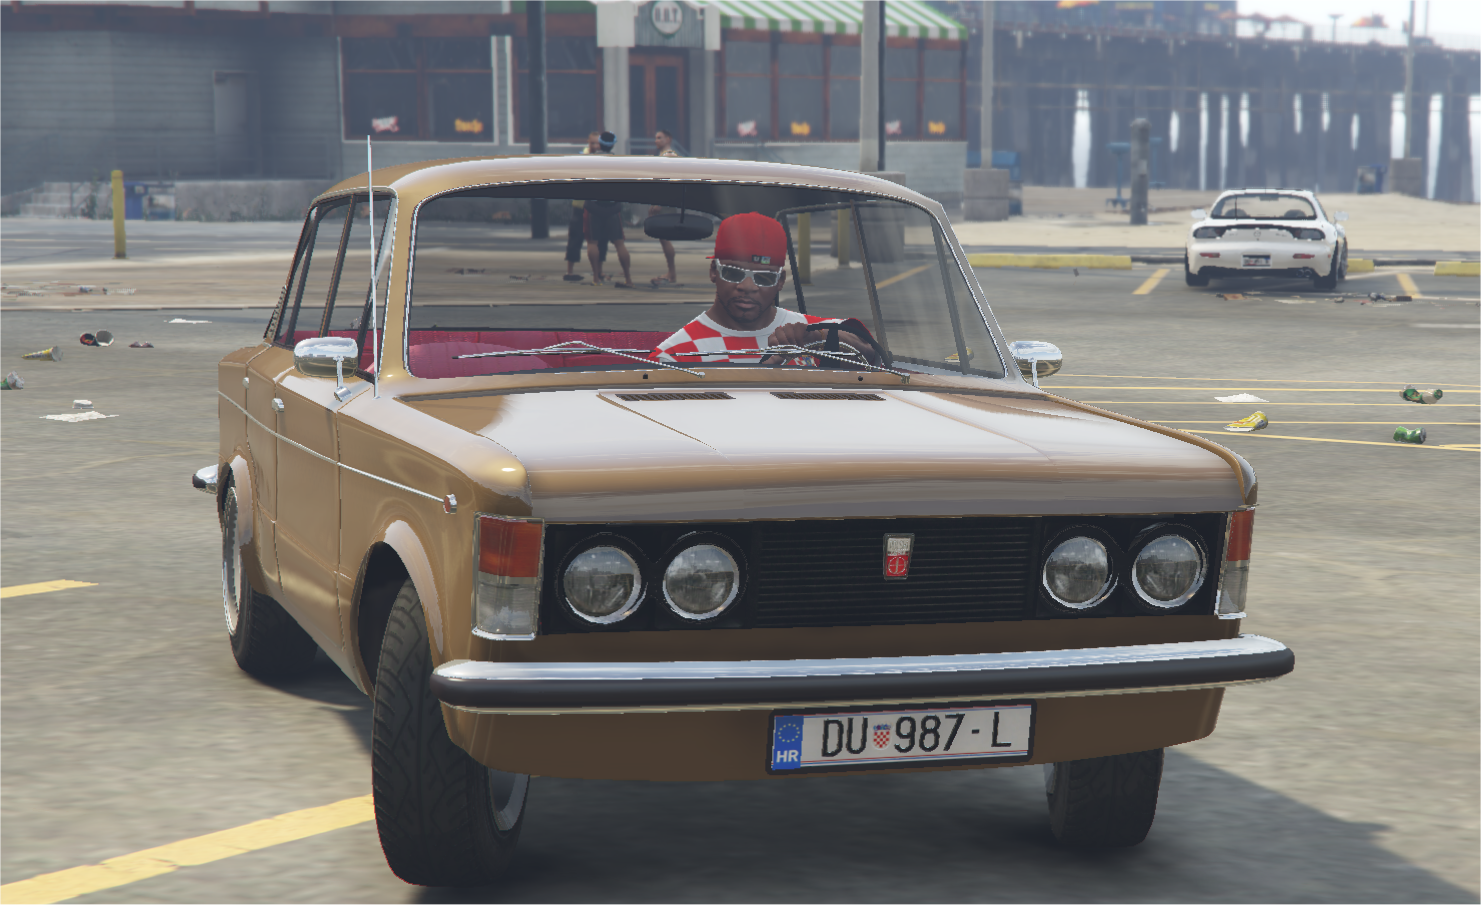 FIAT 125 [REPLACE] for Warrener + tuning parts - GTA5-Mods com